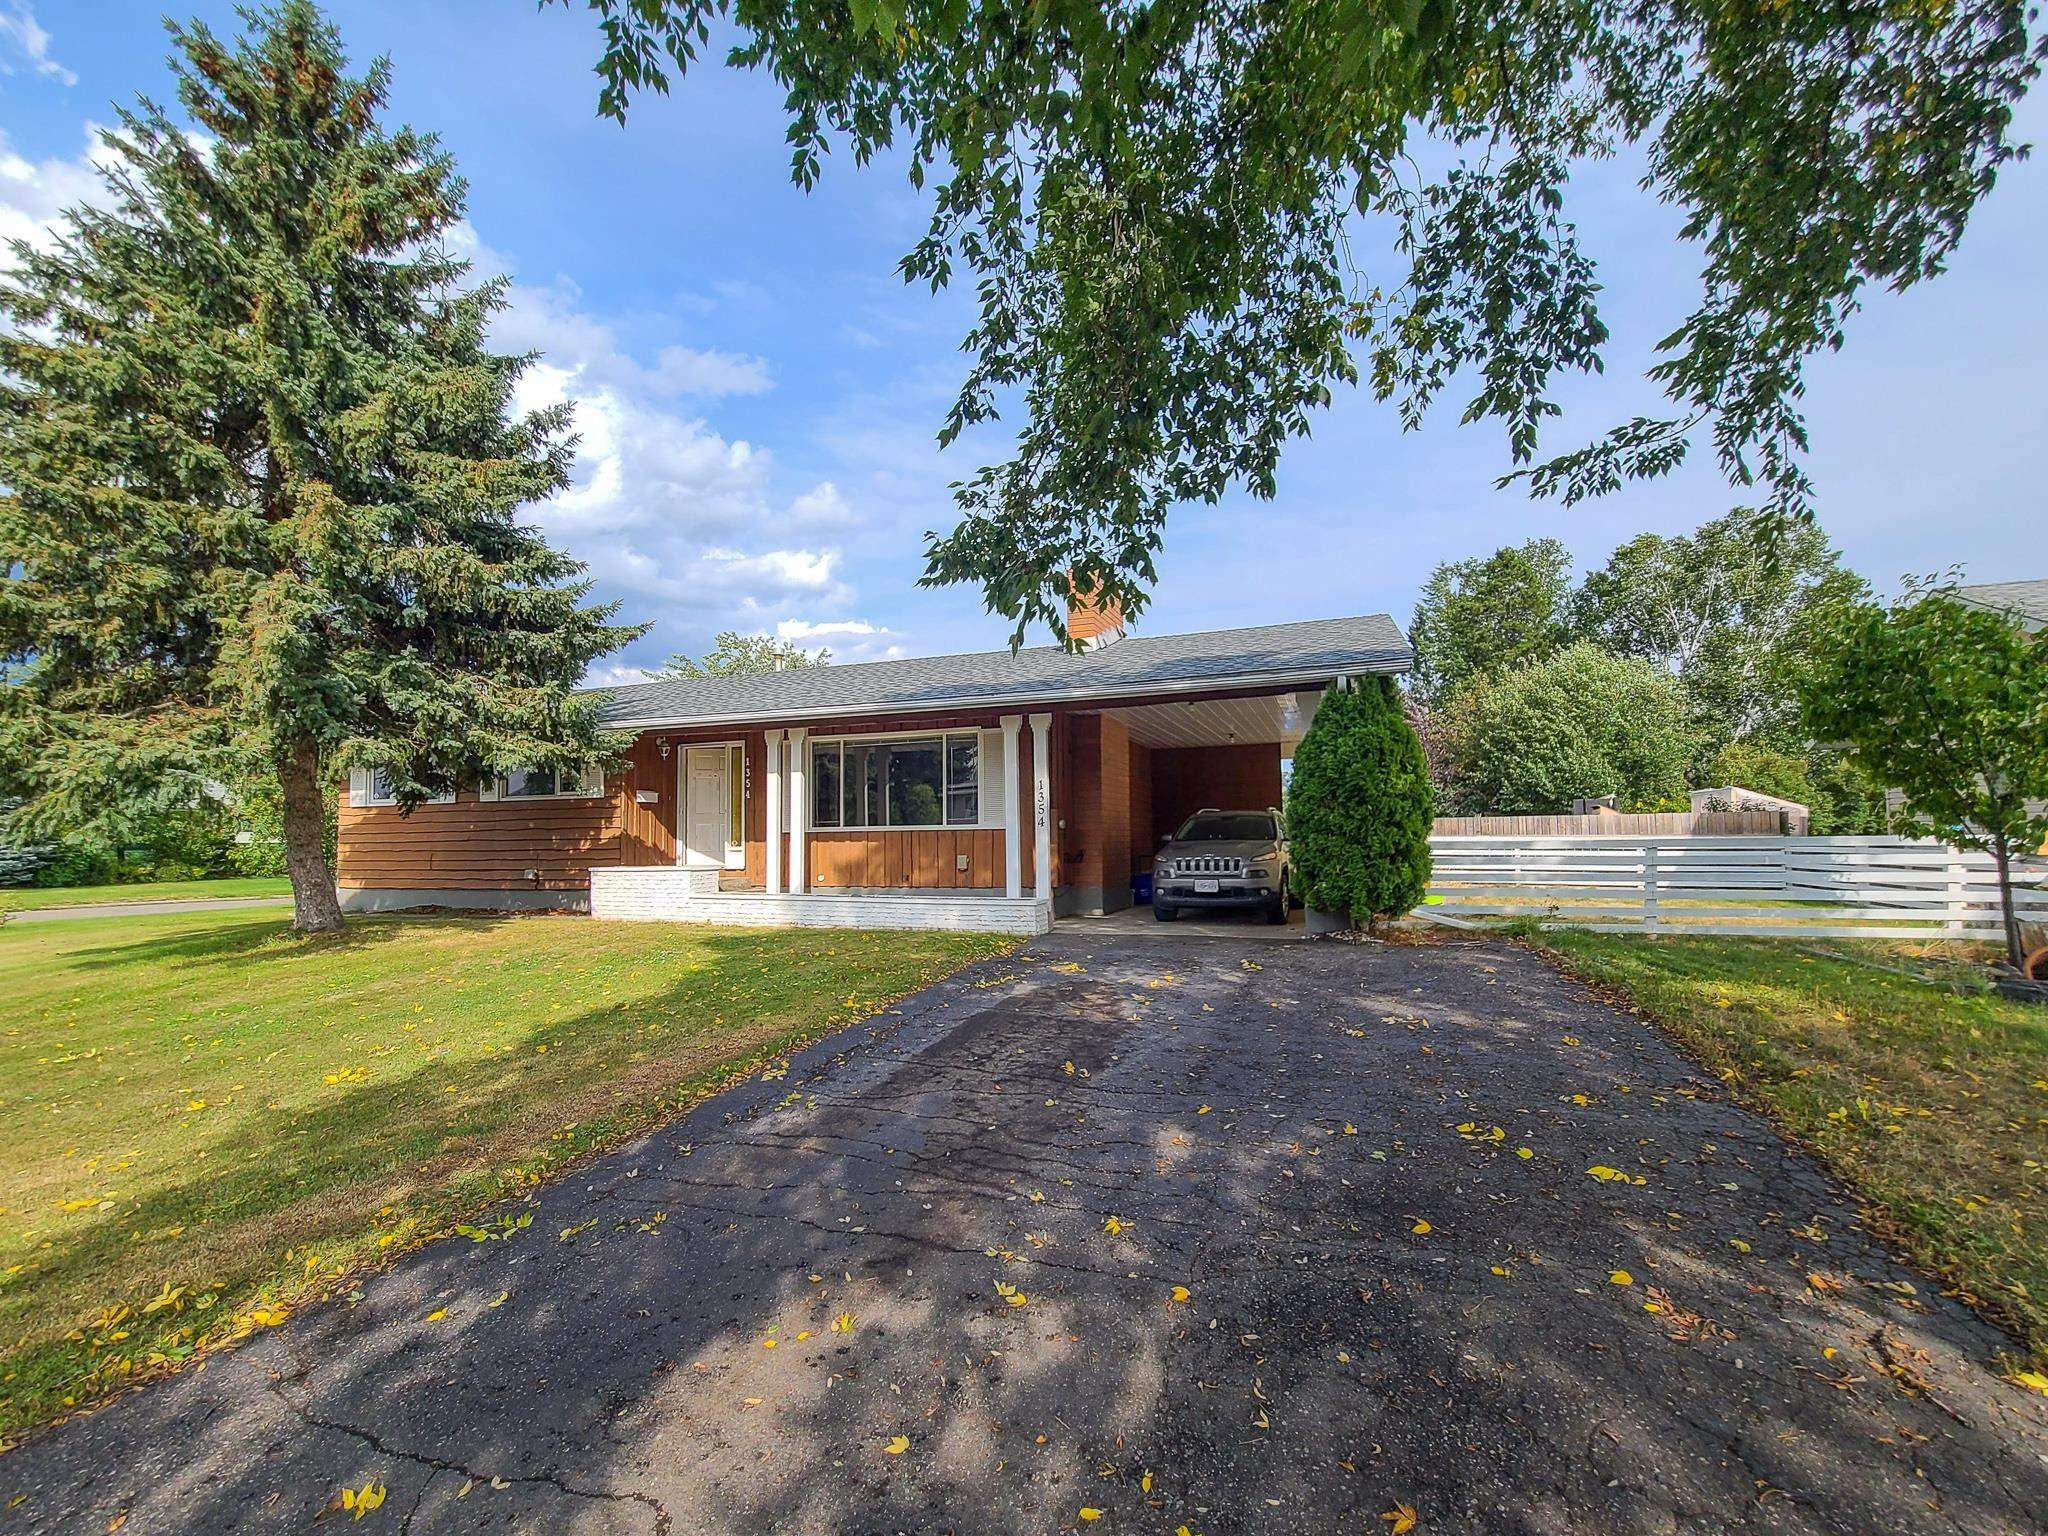 """Main Photo: 1354 LIARD Drive: Spruceland House for sale in """"Spruceland"""" (PG City West (Zone 71))  : MLS®# R2609884"""